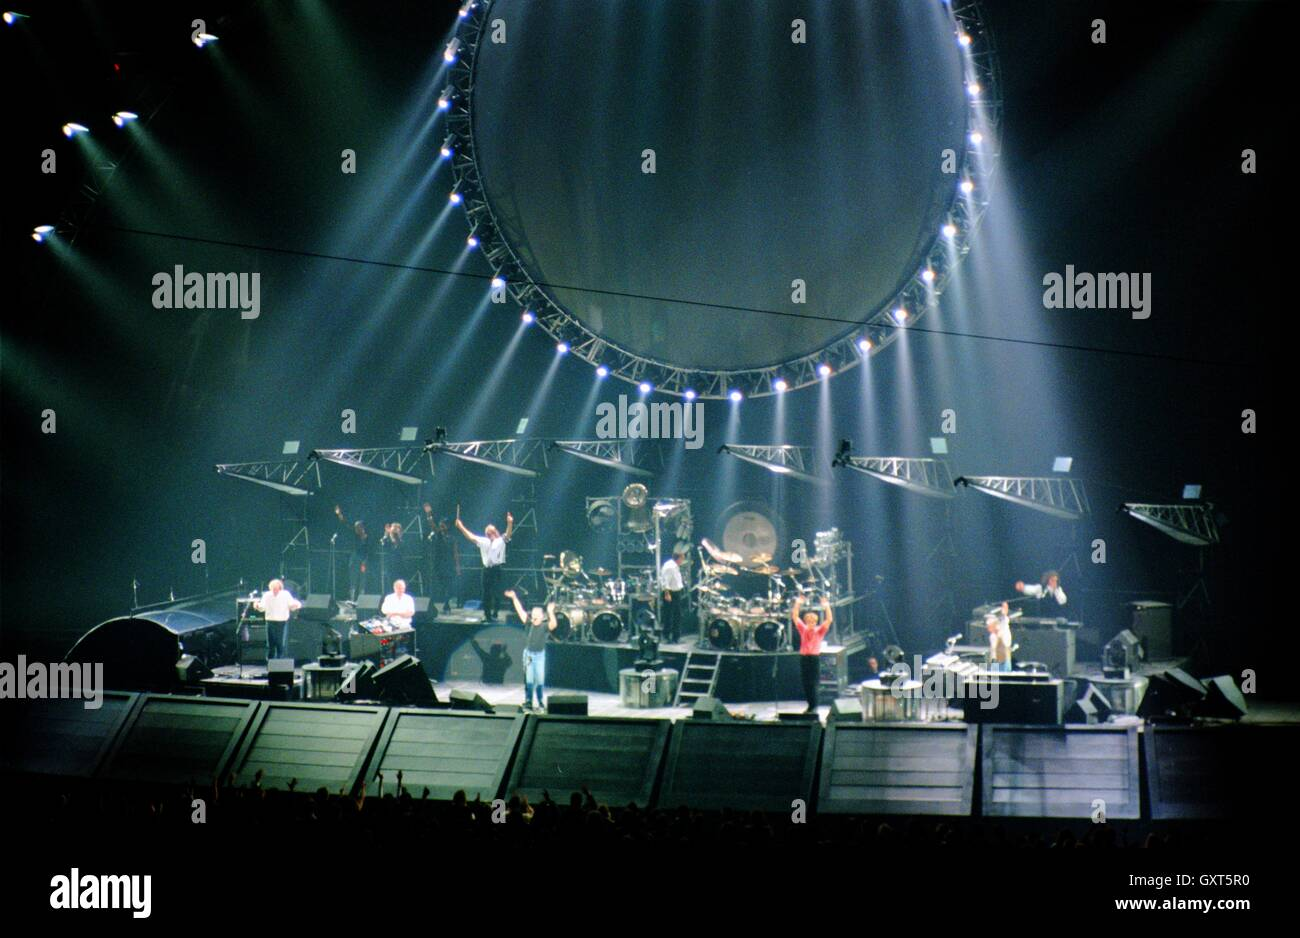 Pink Floyd Live at Earls Court, London, Britain - October 1994. - Stock Image